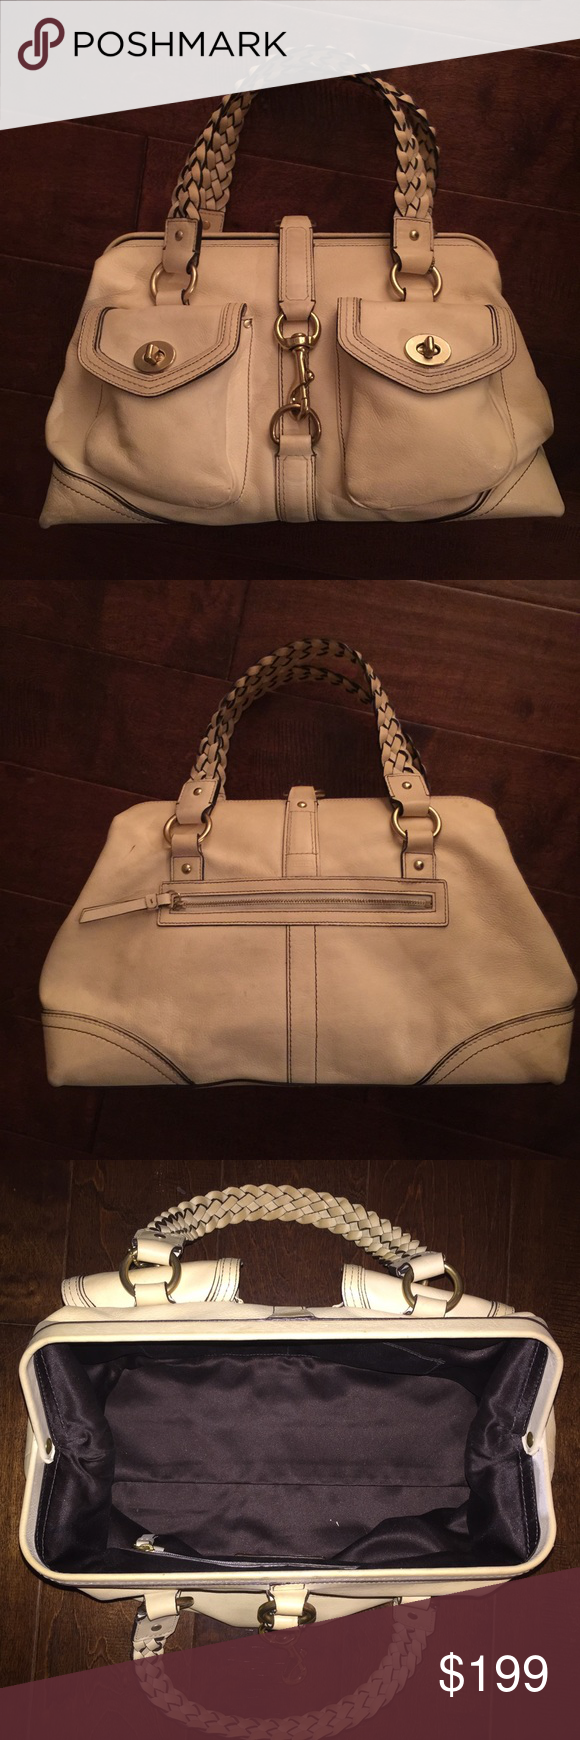 Coach Daphne Satchel in Ivory Vachetta Leather Vachetta Ivory Leather with Brass Coach hangtag. Doctor style opening with pull and dogleash closure. Brass hardware. 4 Brass feet at the bottom. Rear zippered compartment.  2 front pockets with turnlock closure Gorgeous braided leather handles Ivory top stitching. Gently used with signs of normal wear in leather, no tears. Noted small pen mark 0.5 cm on back of Purse. Coach Bags Satchels